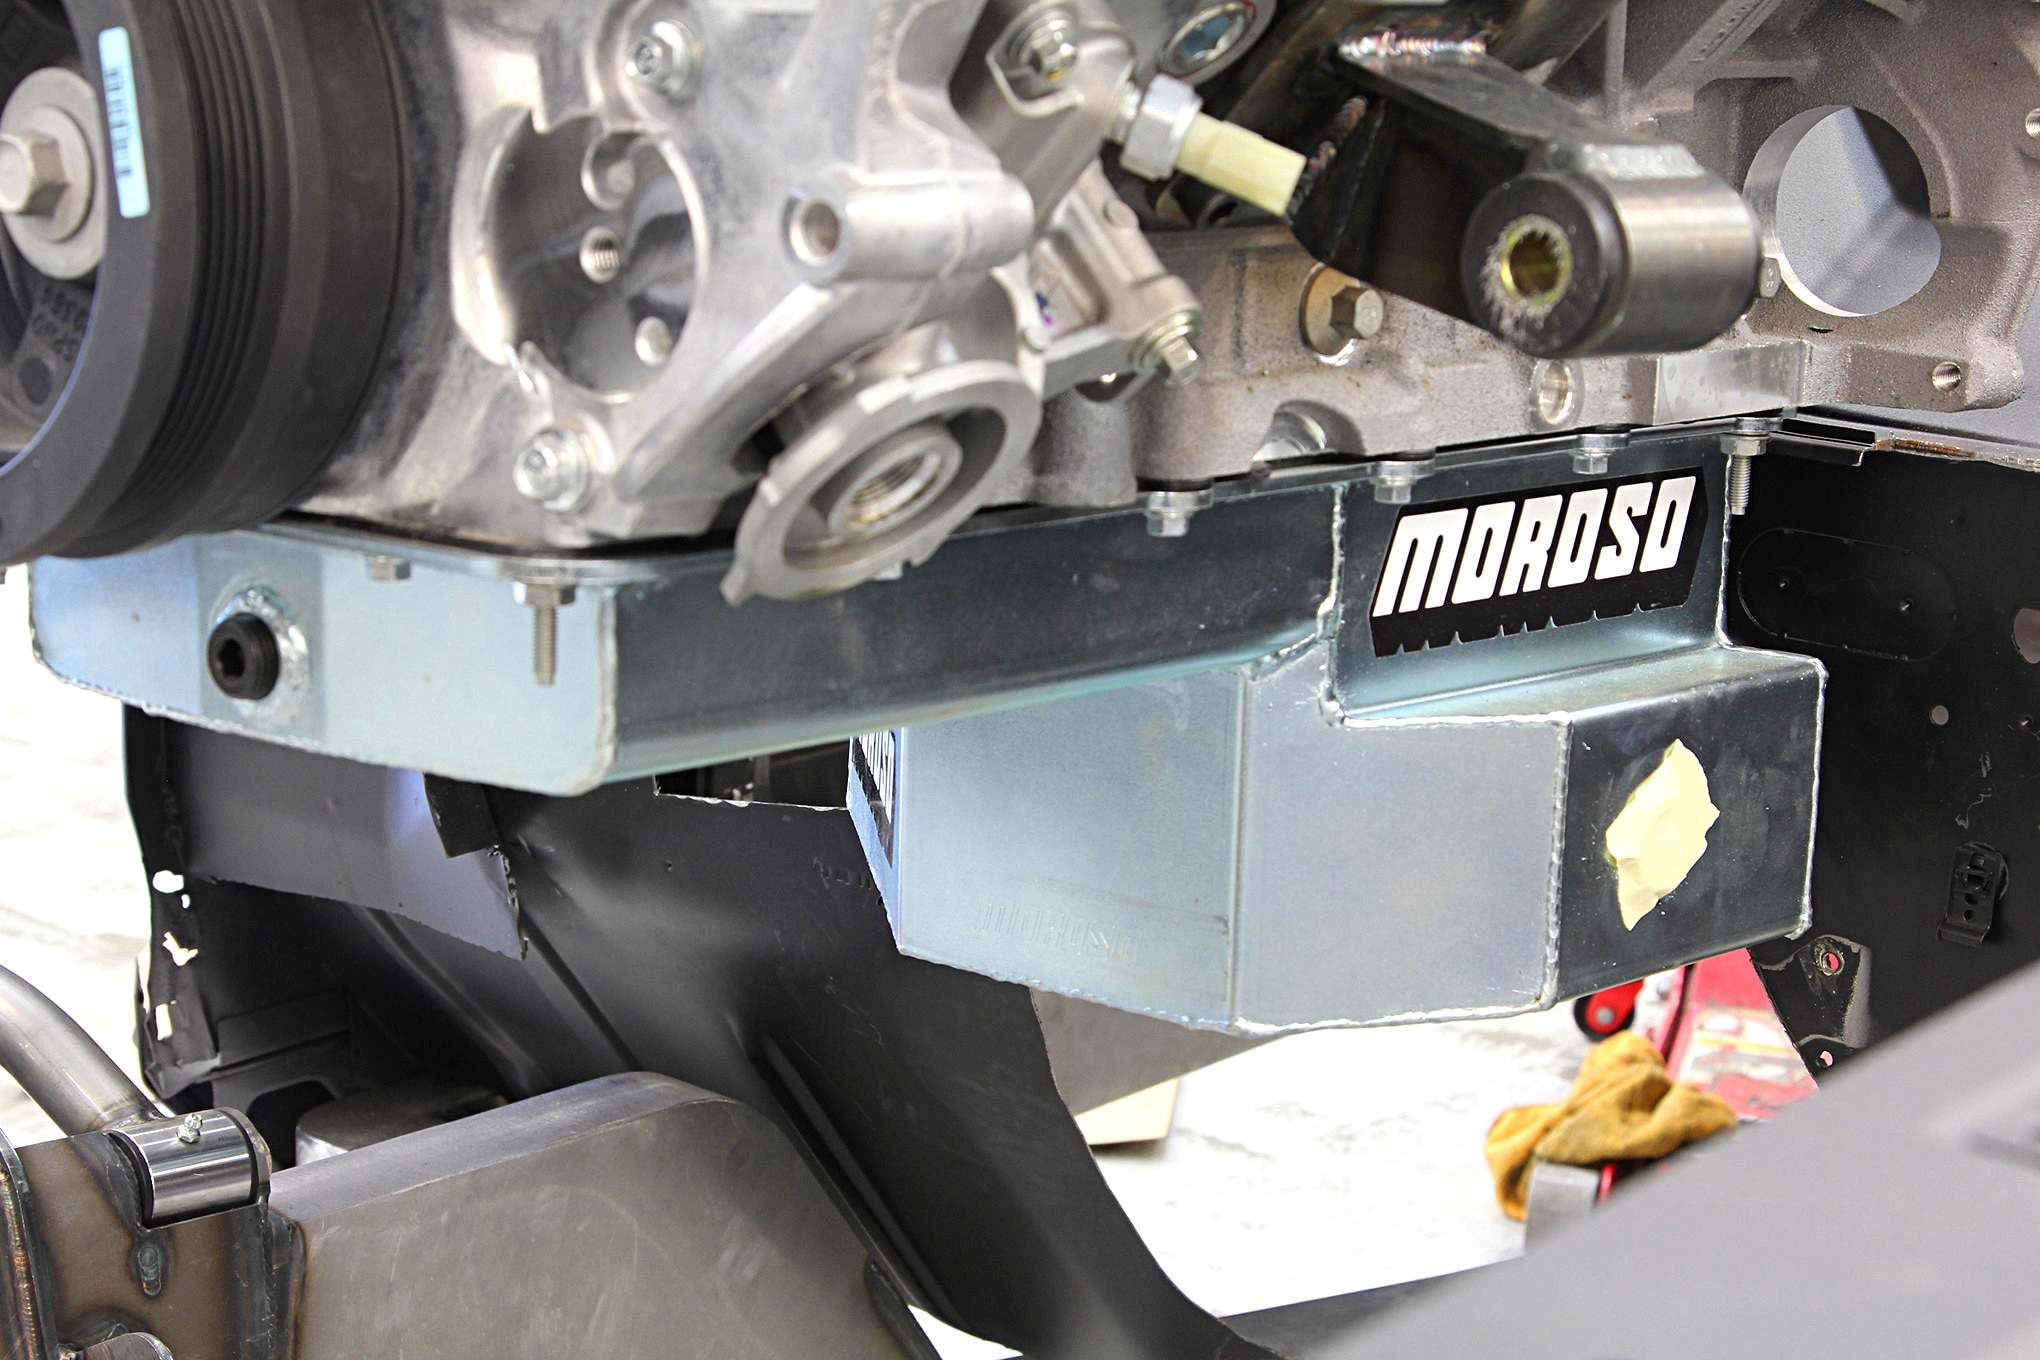 To get the engine as low as possible and maintain adequate crossmember and rack-and-pinion steering clearance the stock pan and oil pump pickup were swapped for Moroso parts.